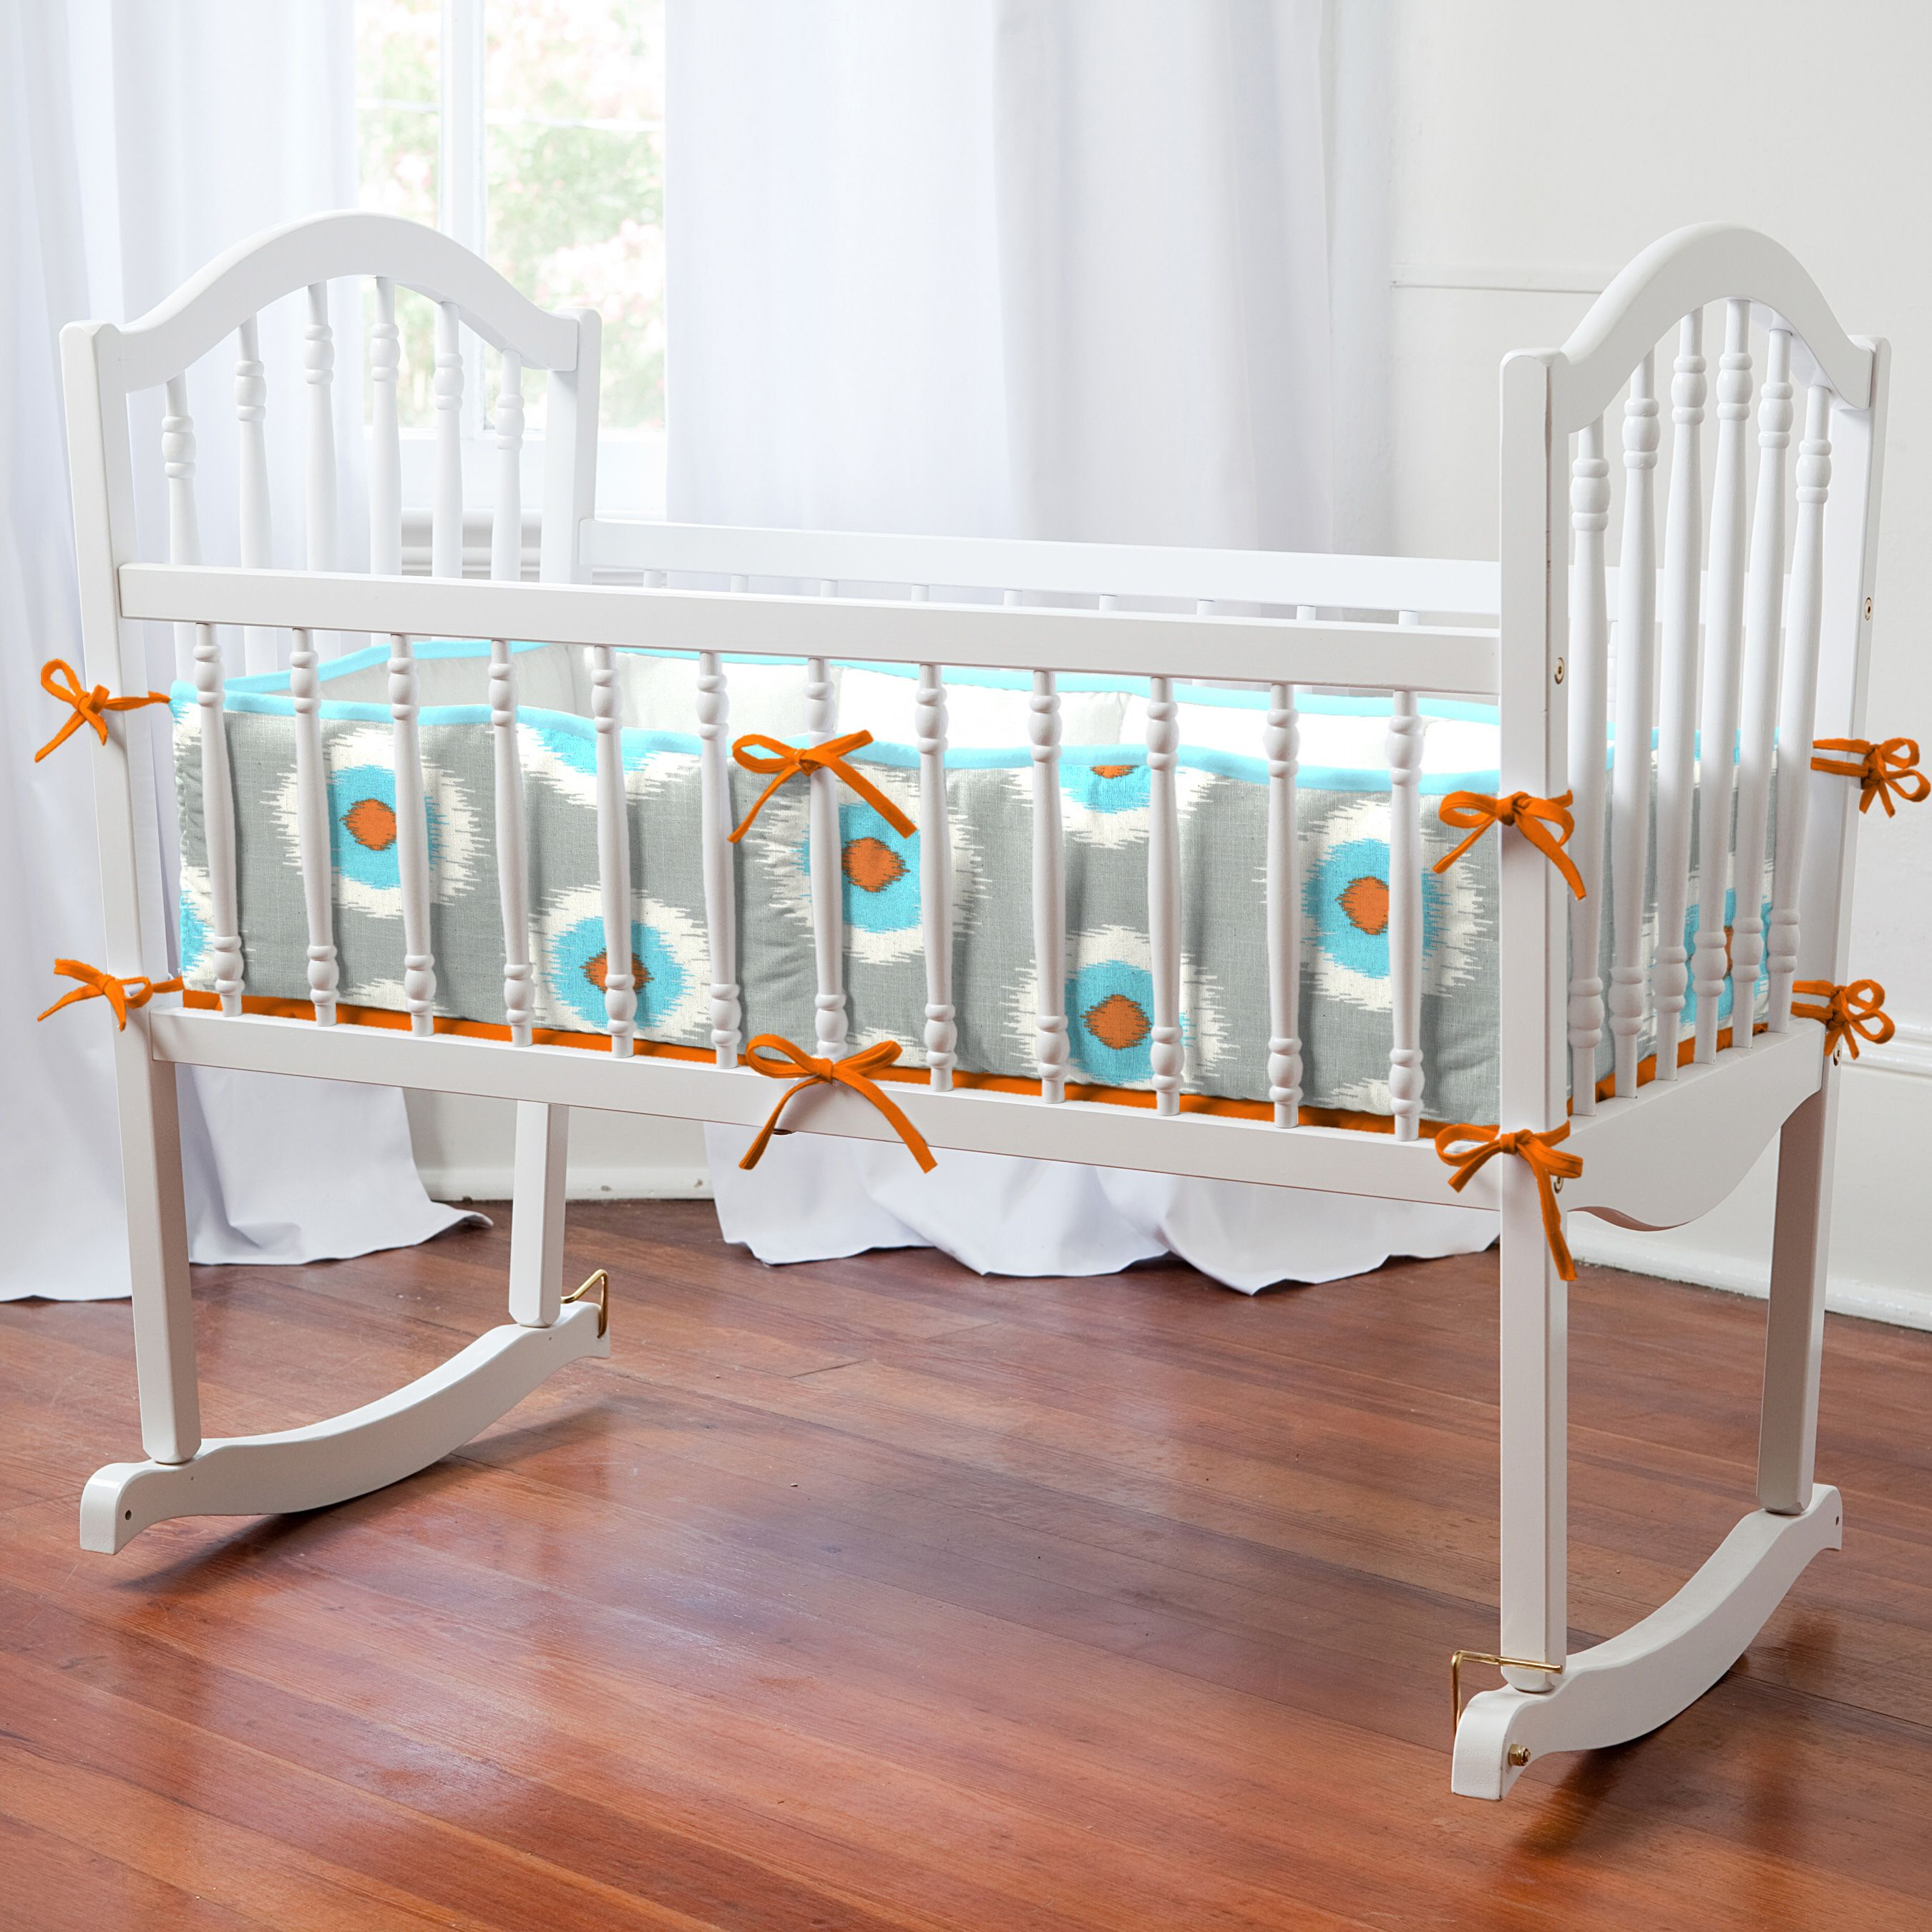 Basic Solid Color Crib Bedding Sets For Those Seeking Simplicity